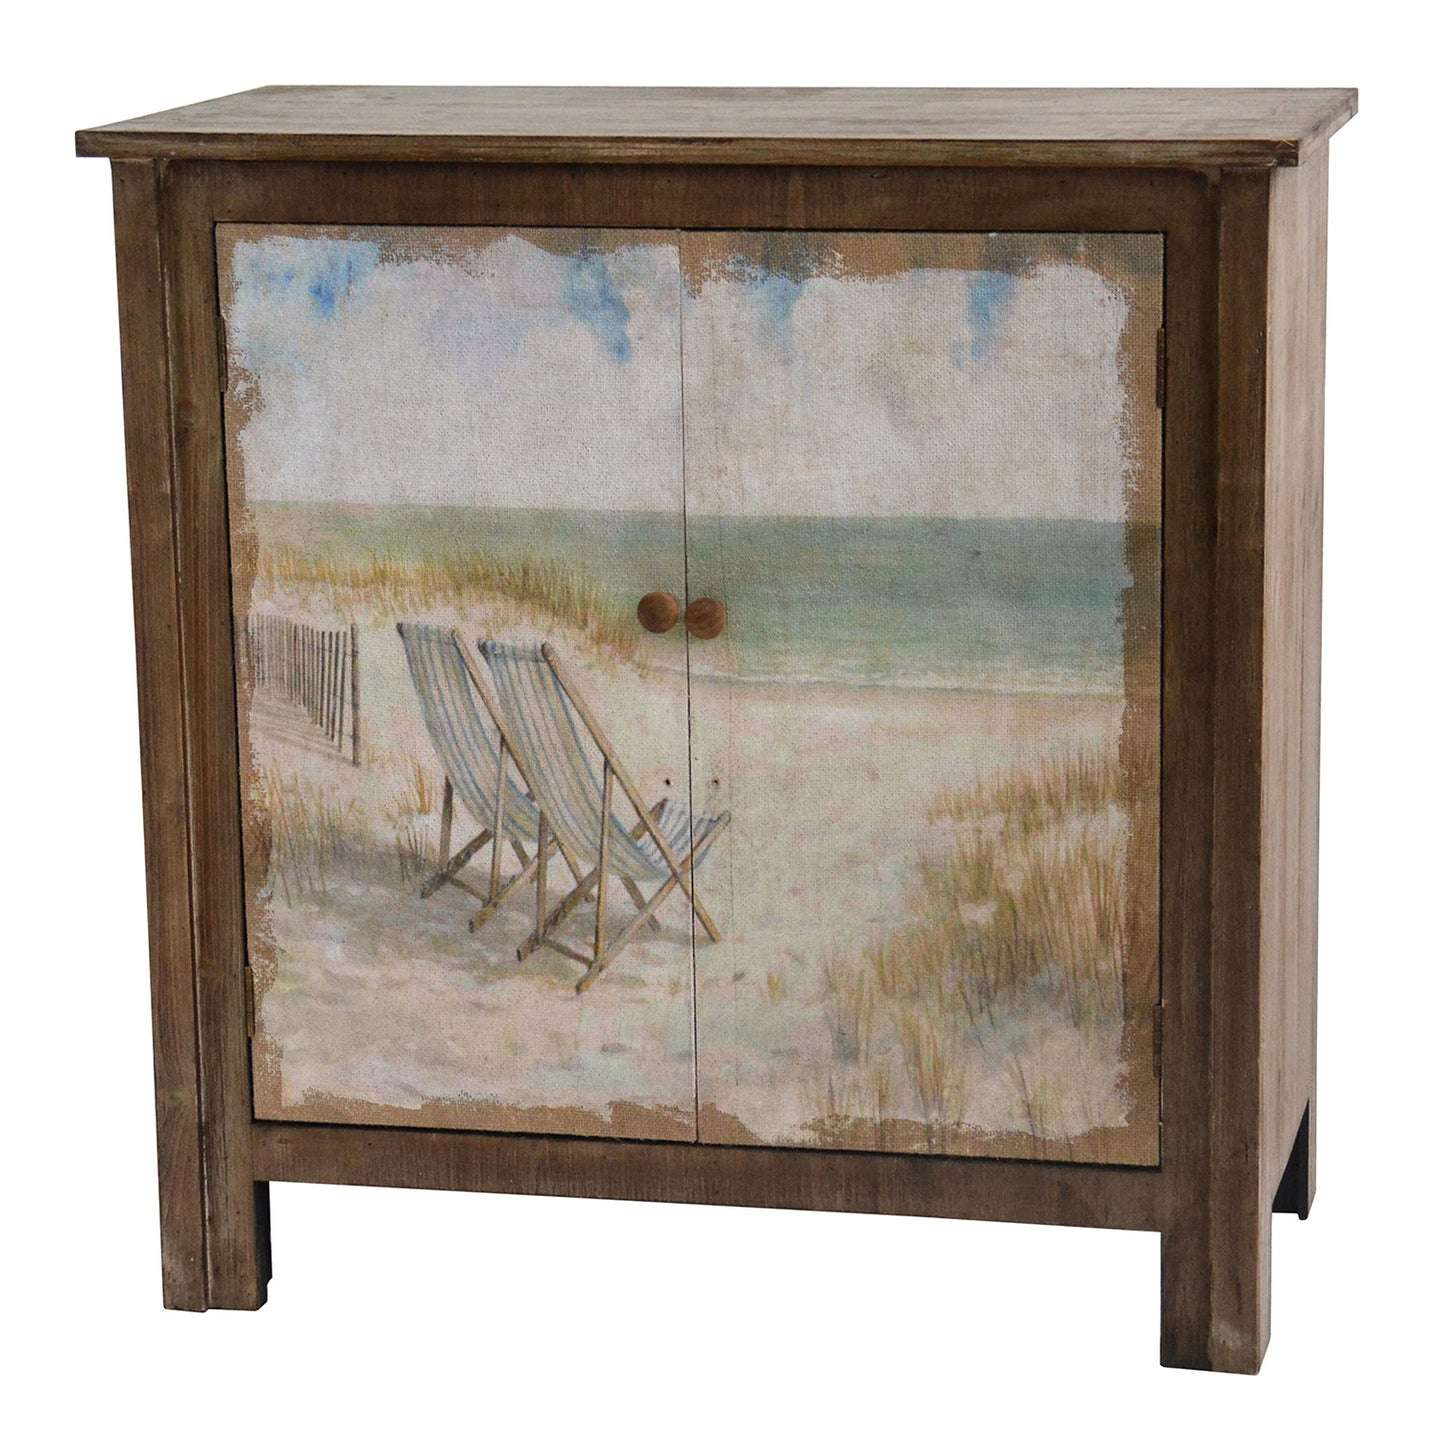 Gulf Breeze Rustic Wood Painted Canvas Beach Scene 2 Door Cabinet - The Rustic Furniture Store